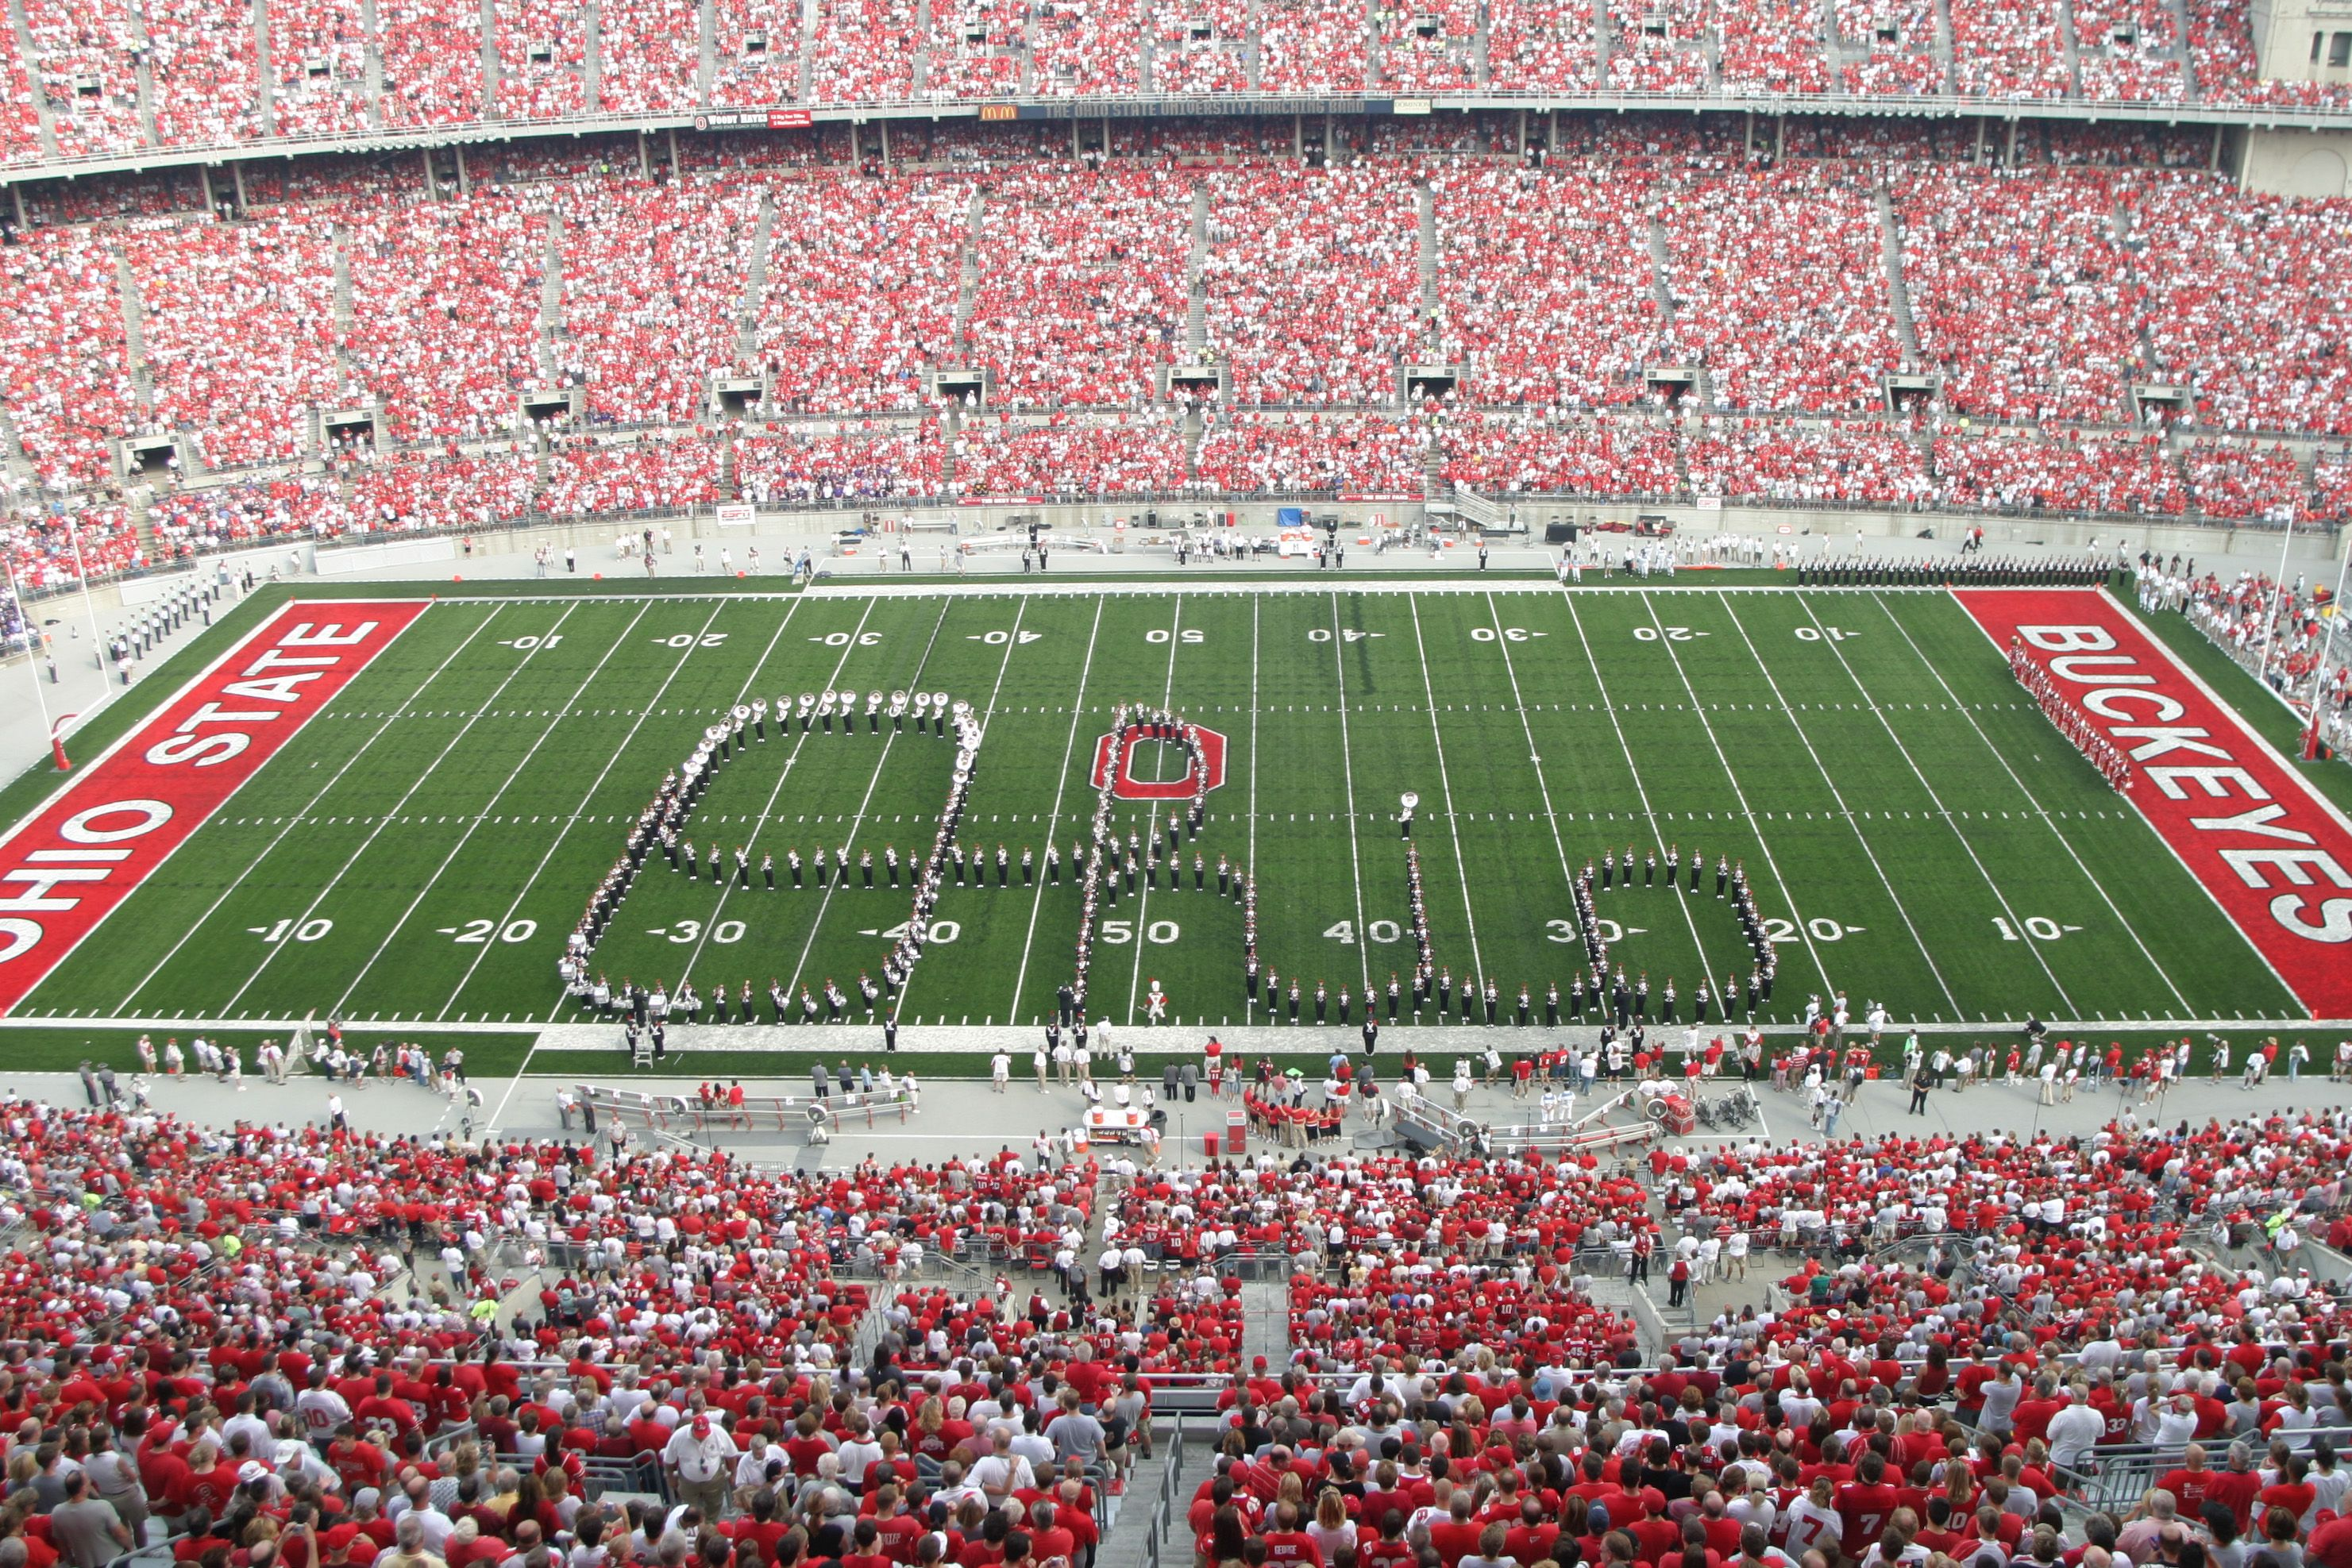 Script Ohio. I get choked up every time.